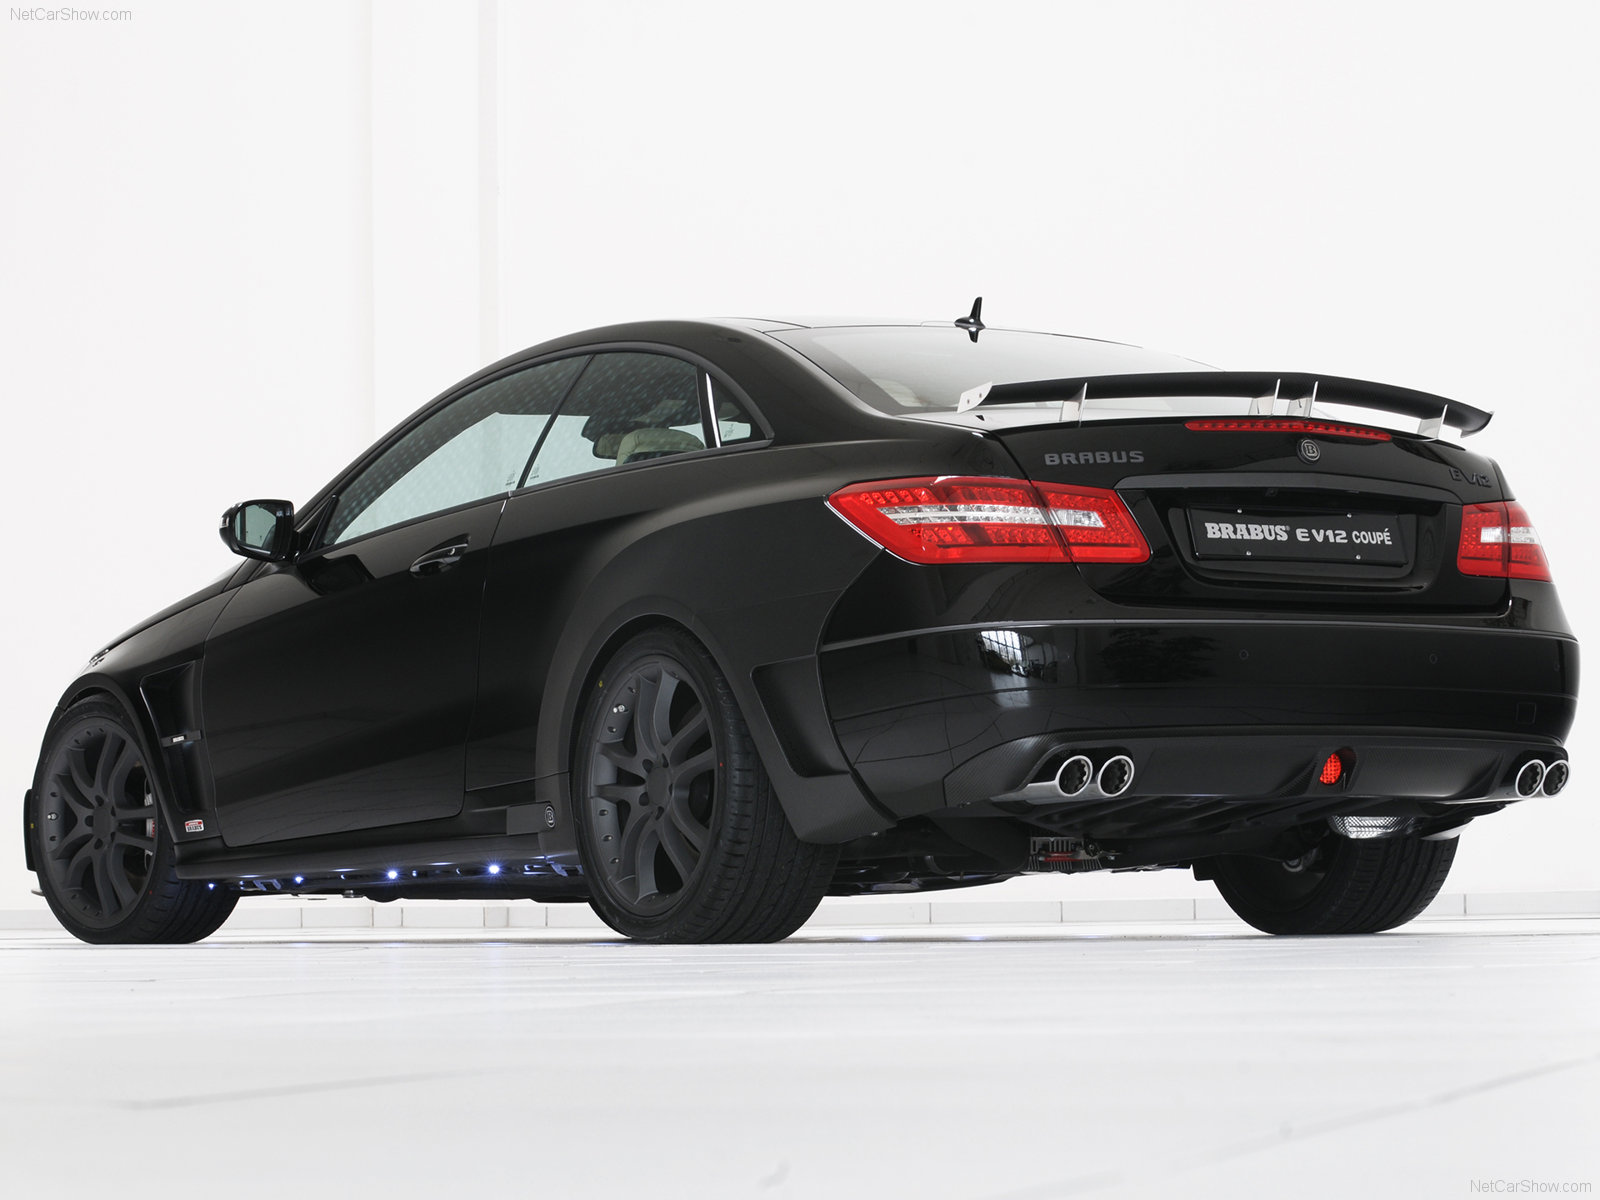 Brabus E V12 Coupe photo 72400